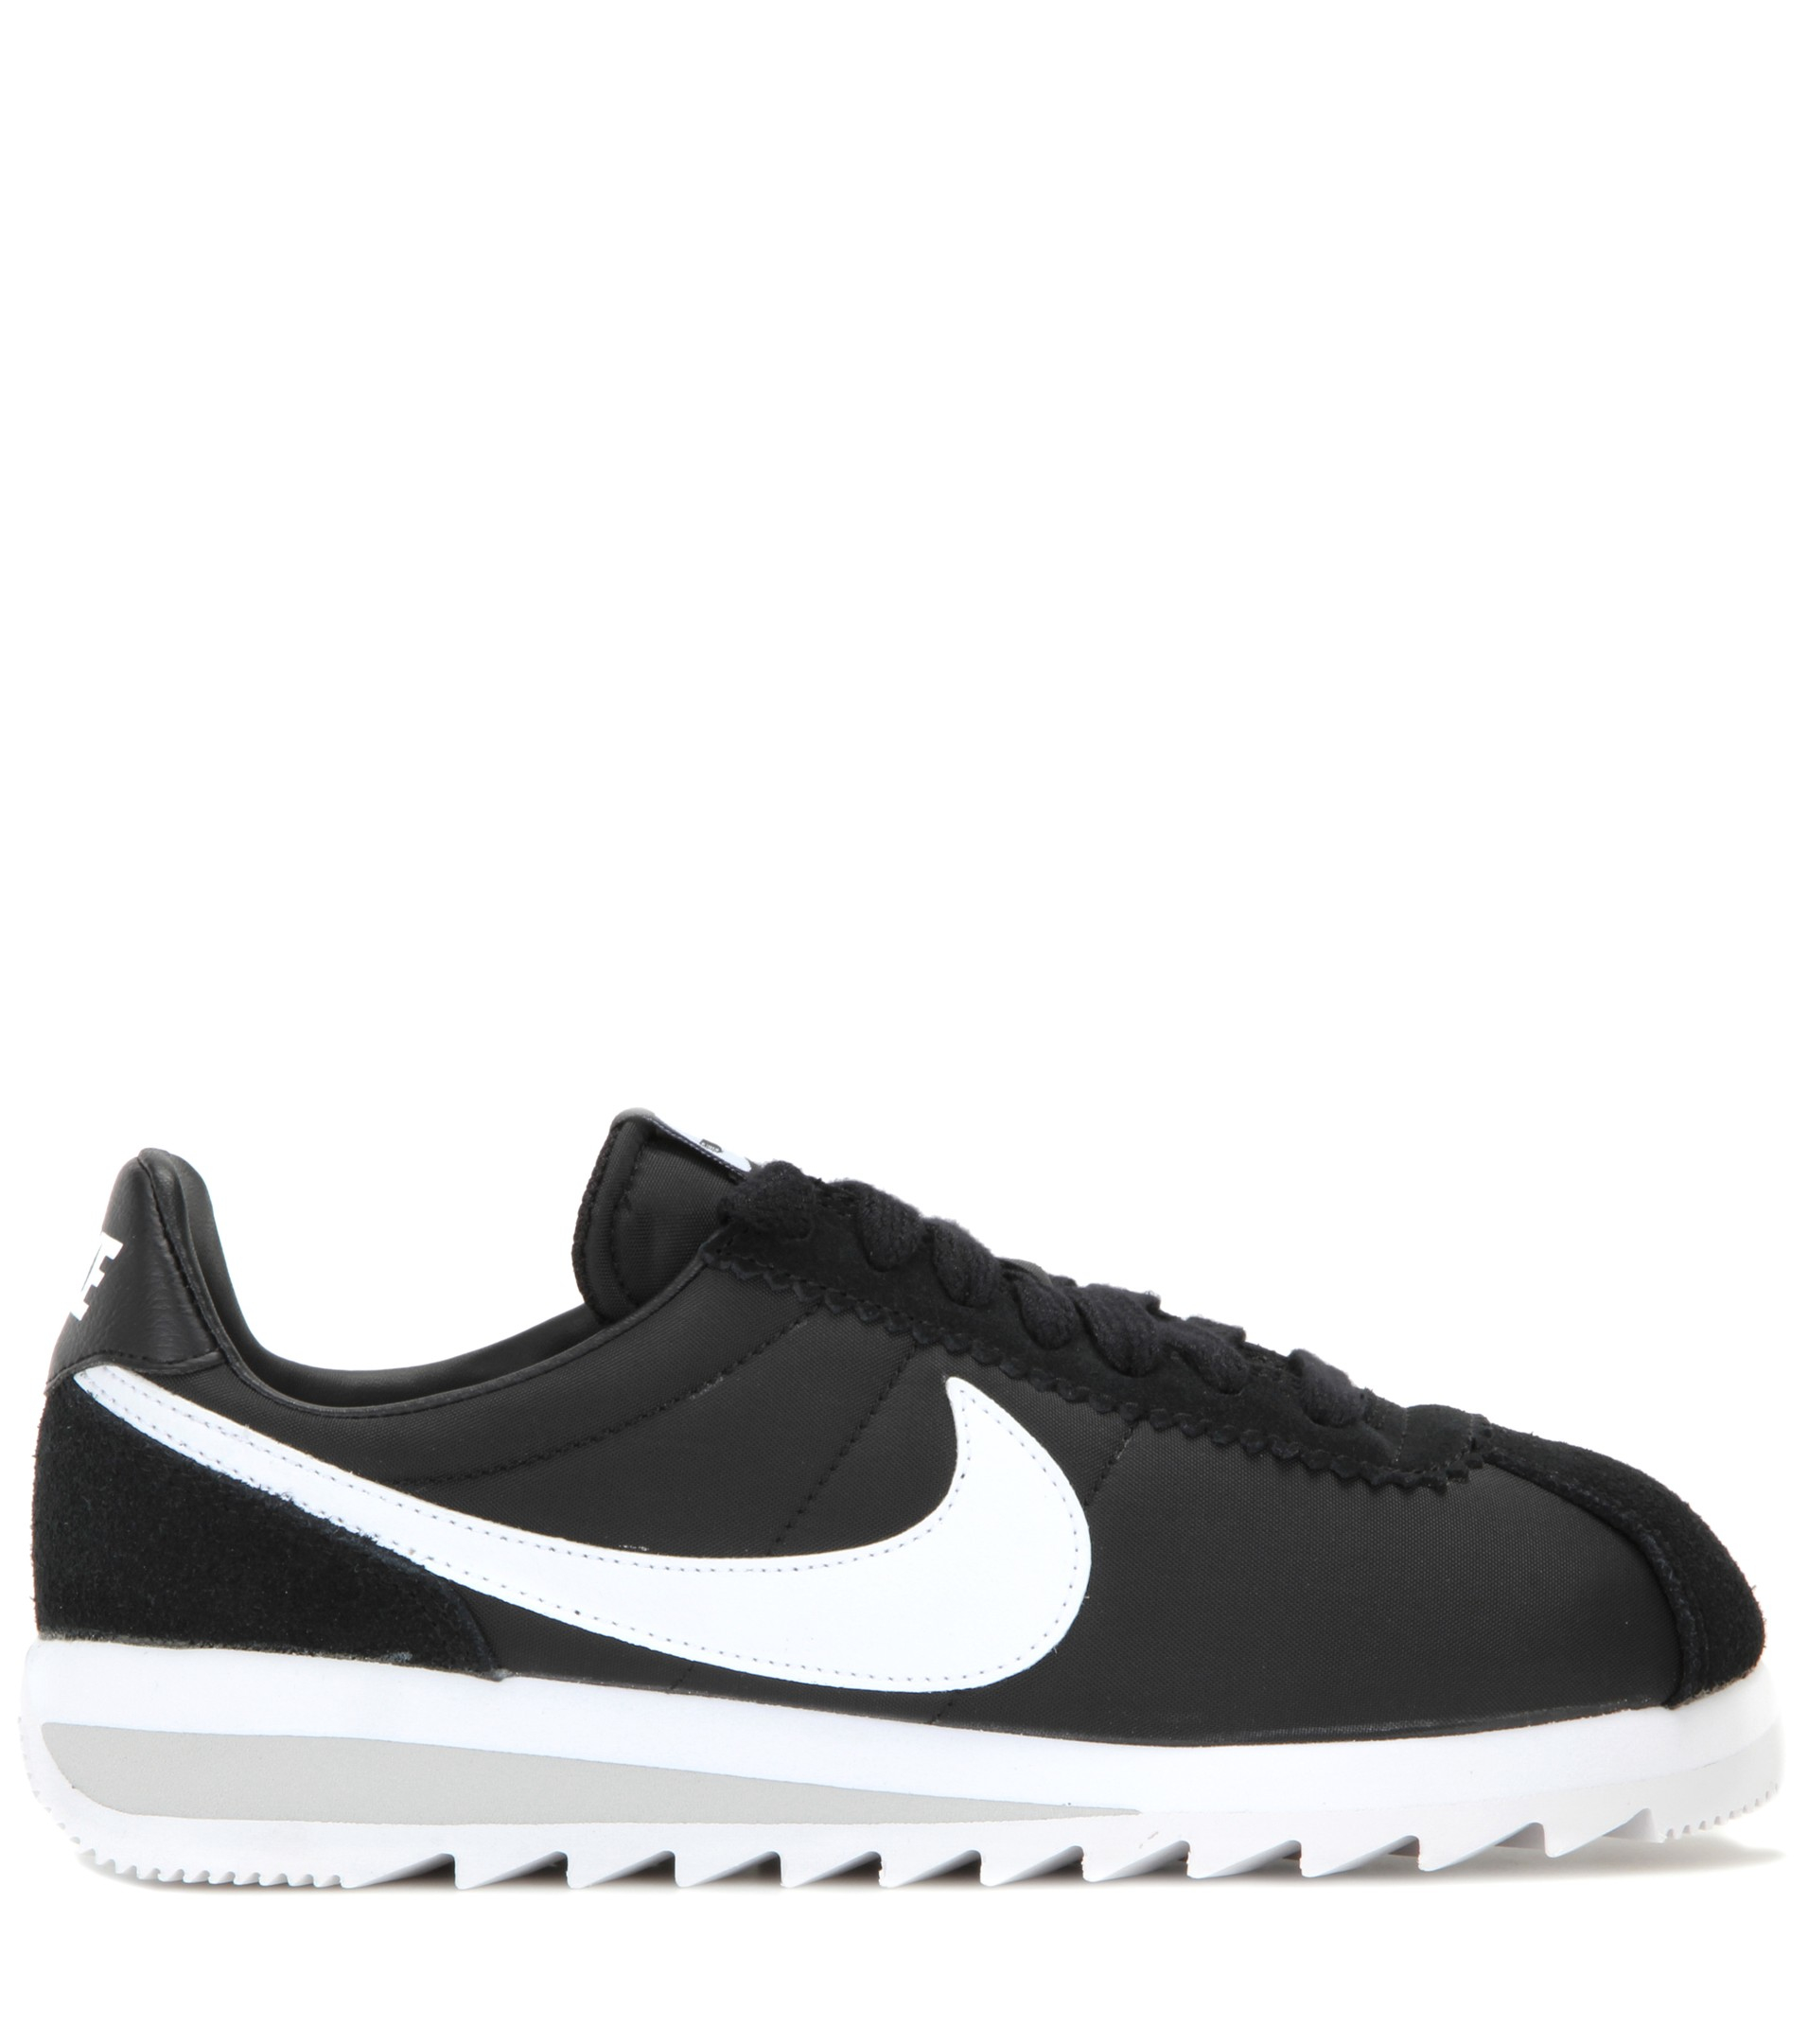 new product 62db3 209d0 Nike Classic Cortez Epic Sneakers in Black - Lyst